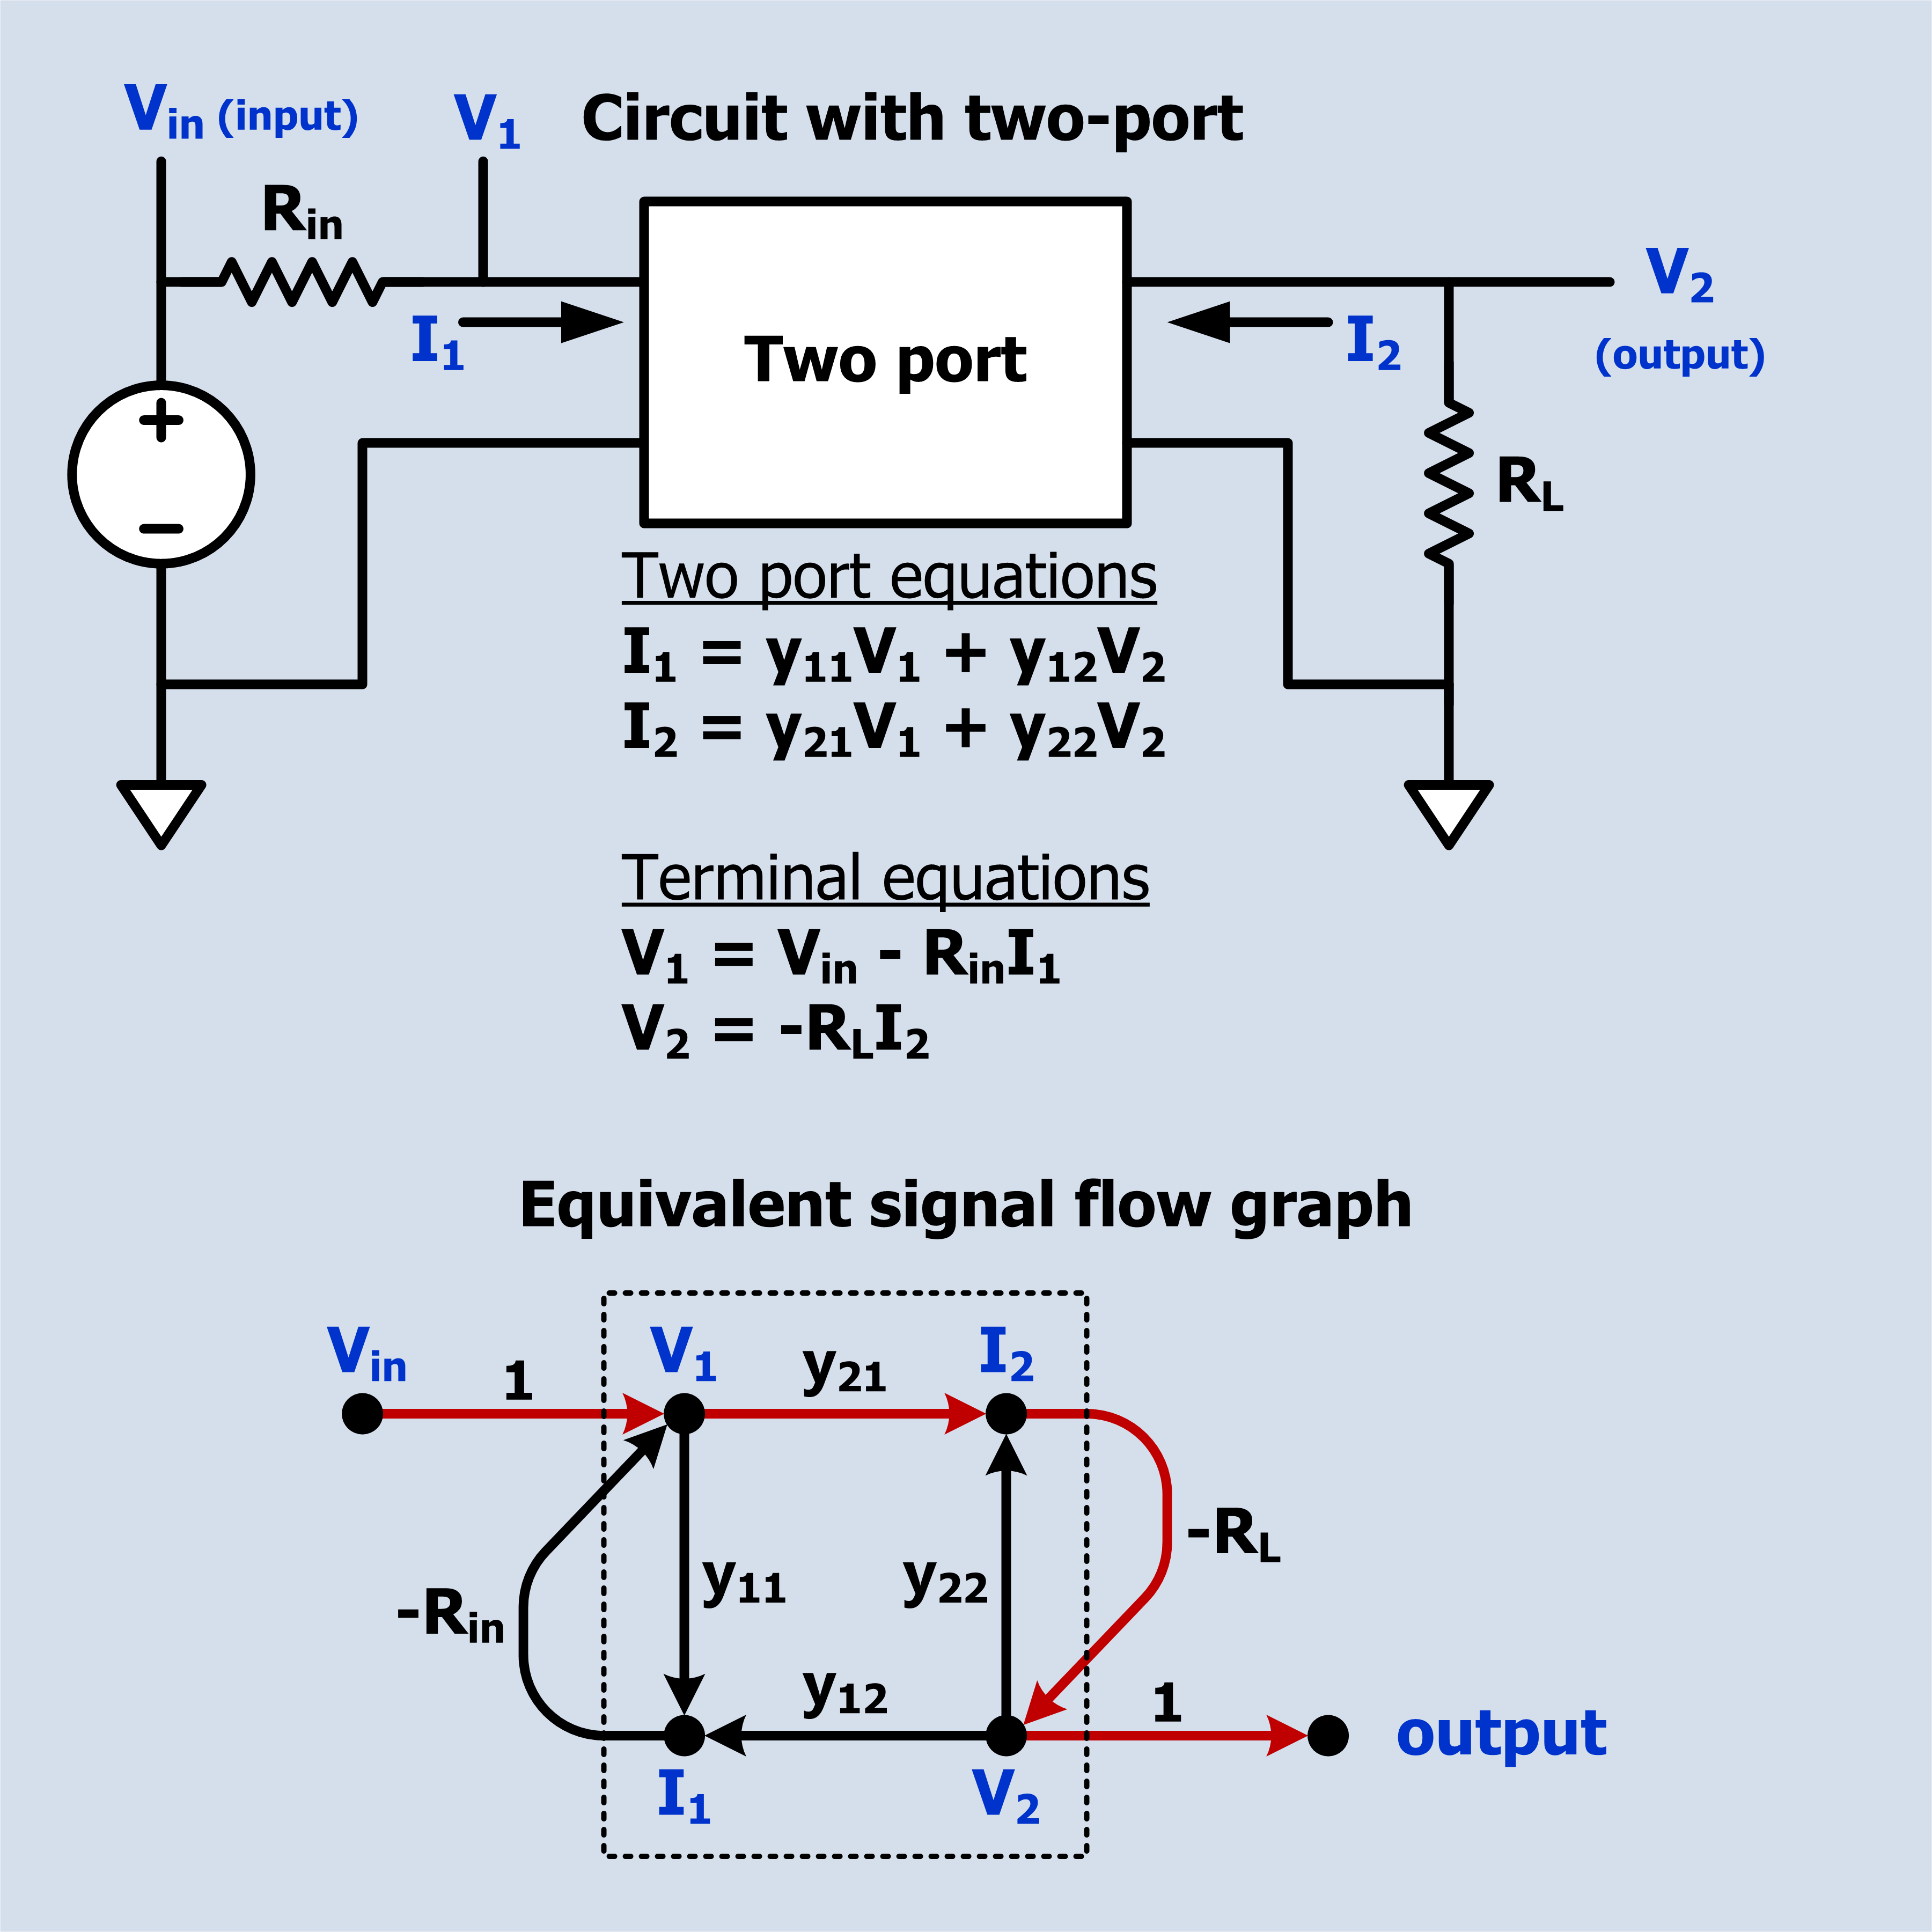 File:Circuit with two port and equivalent signal flow graph.png ...